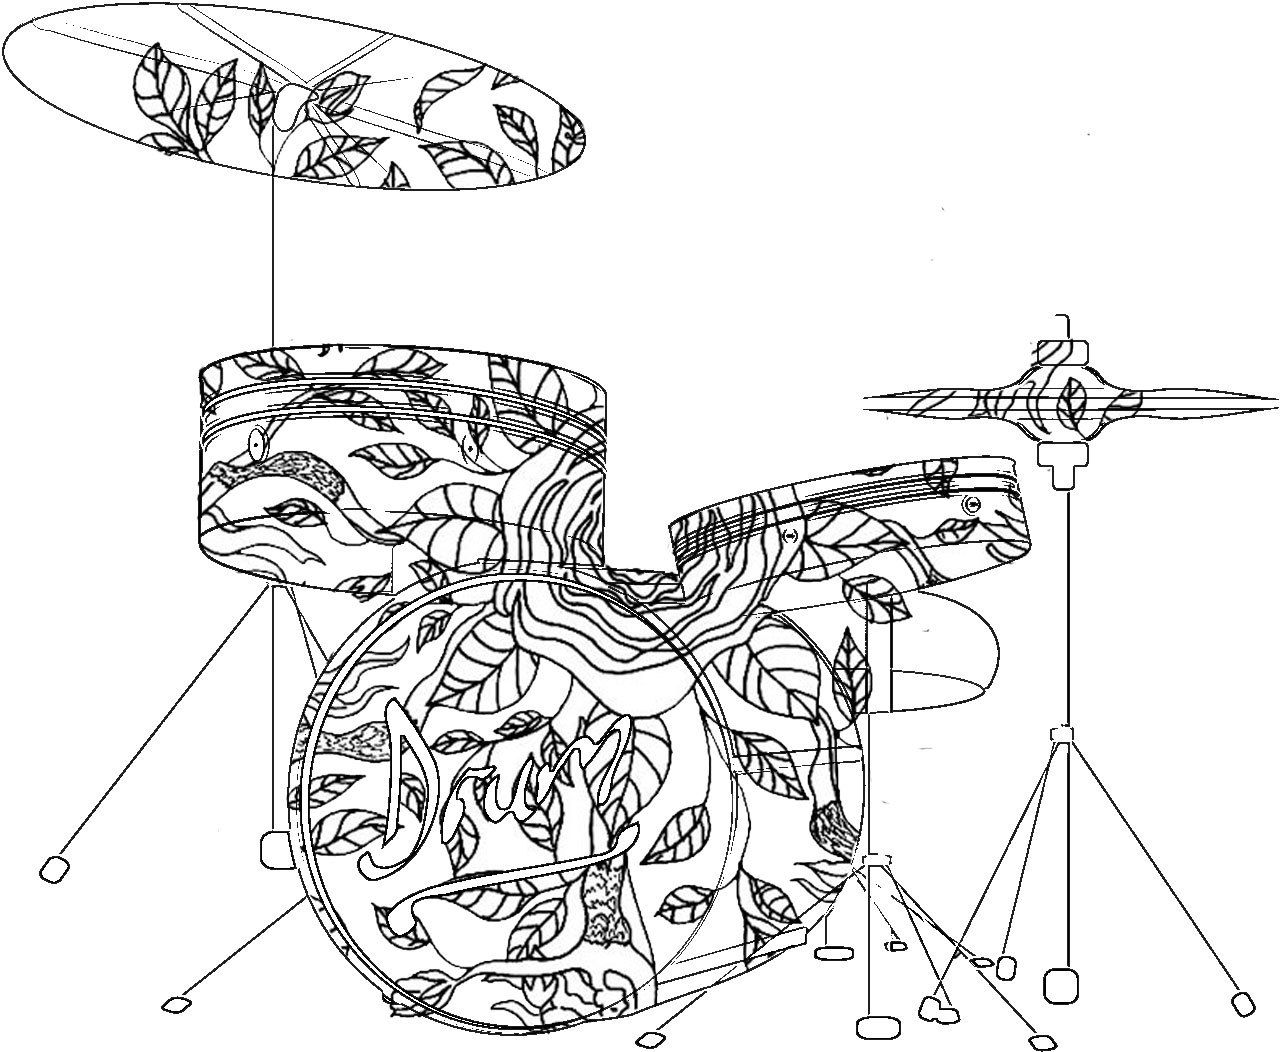 Adult Coloring Pages Drums Ult Coloring Book Pagesmore Pins Like This At Fos